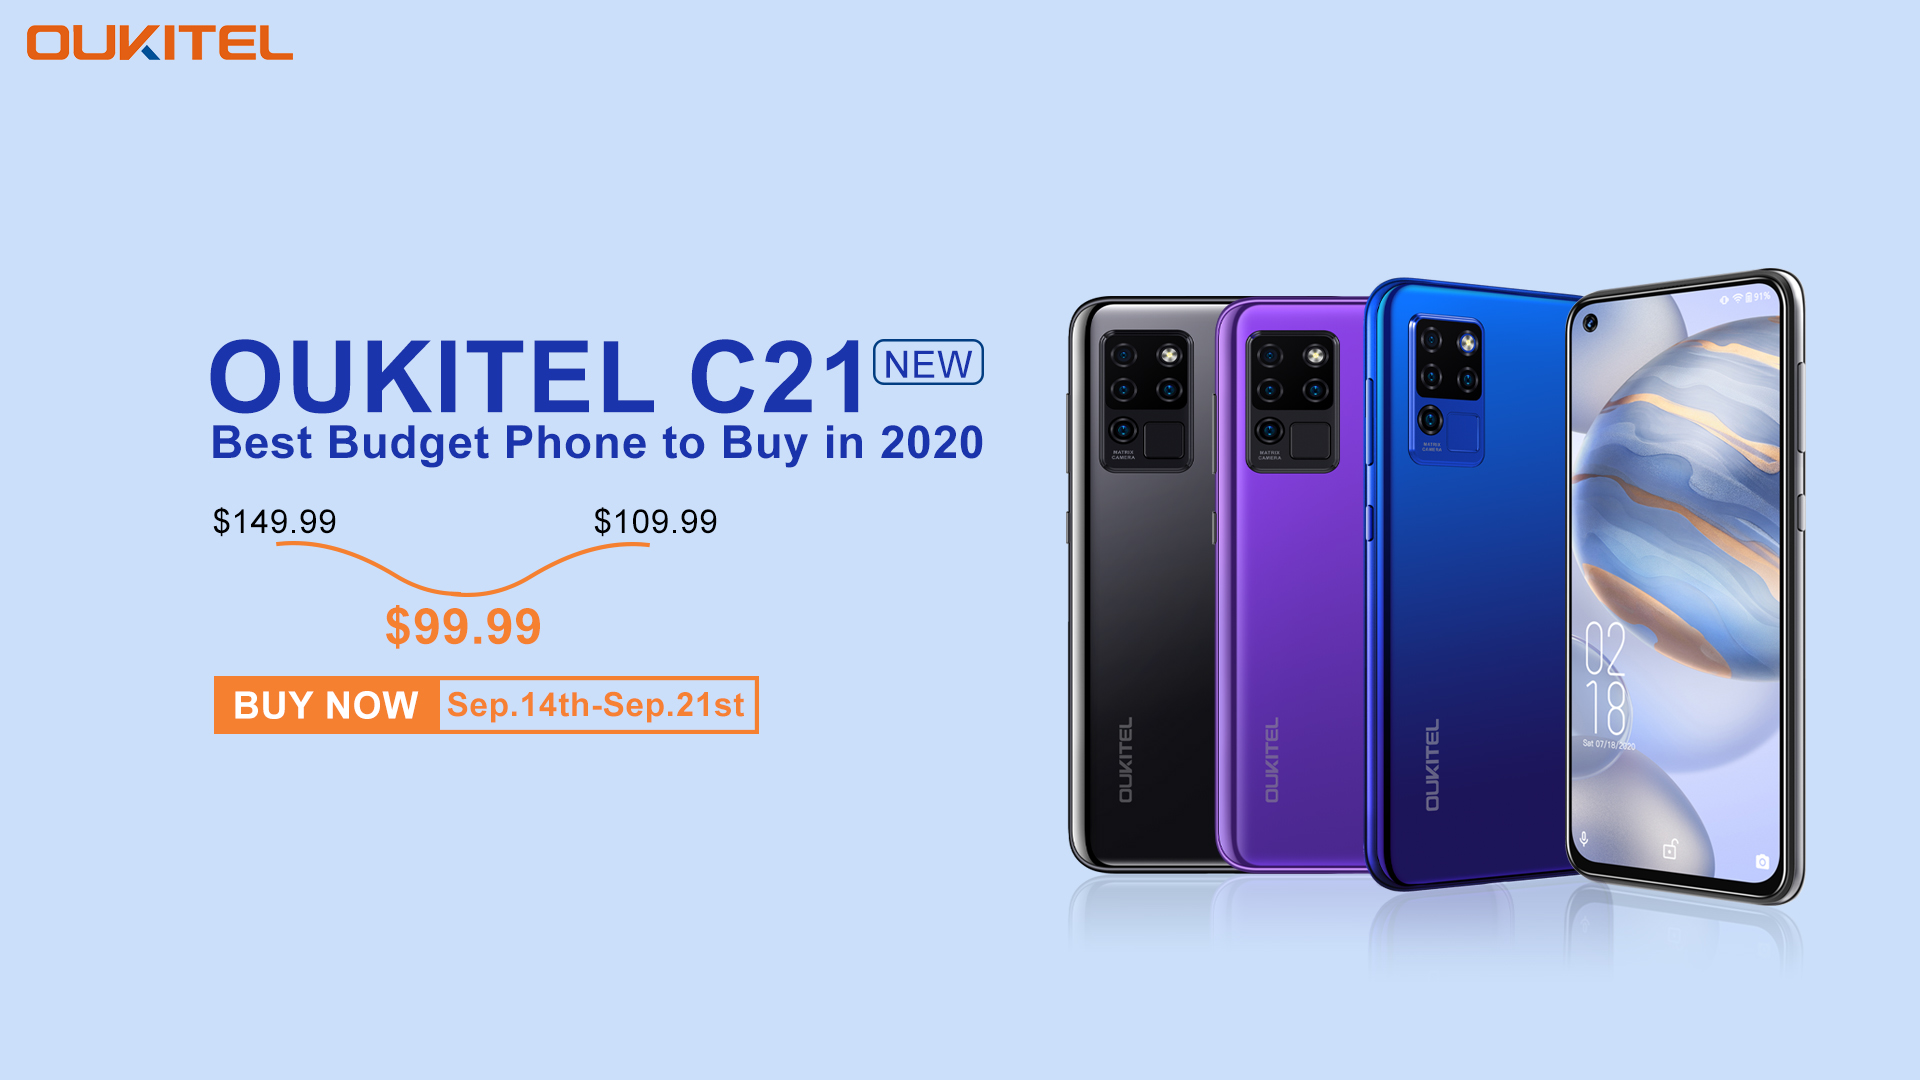 Special sale live now on #Banggood 📣📣 Get the best budget phone of 2020 #OukitelC21 at $99.99 only😍